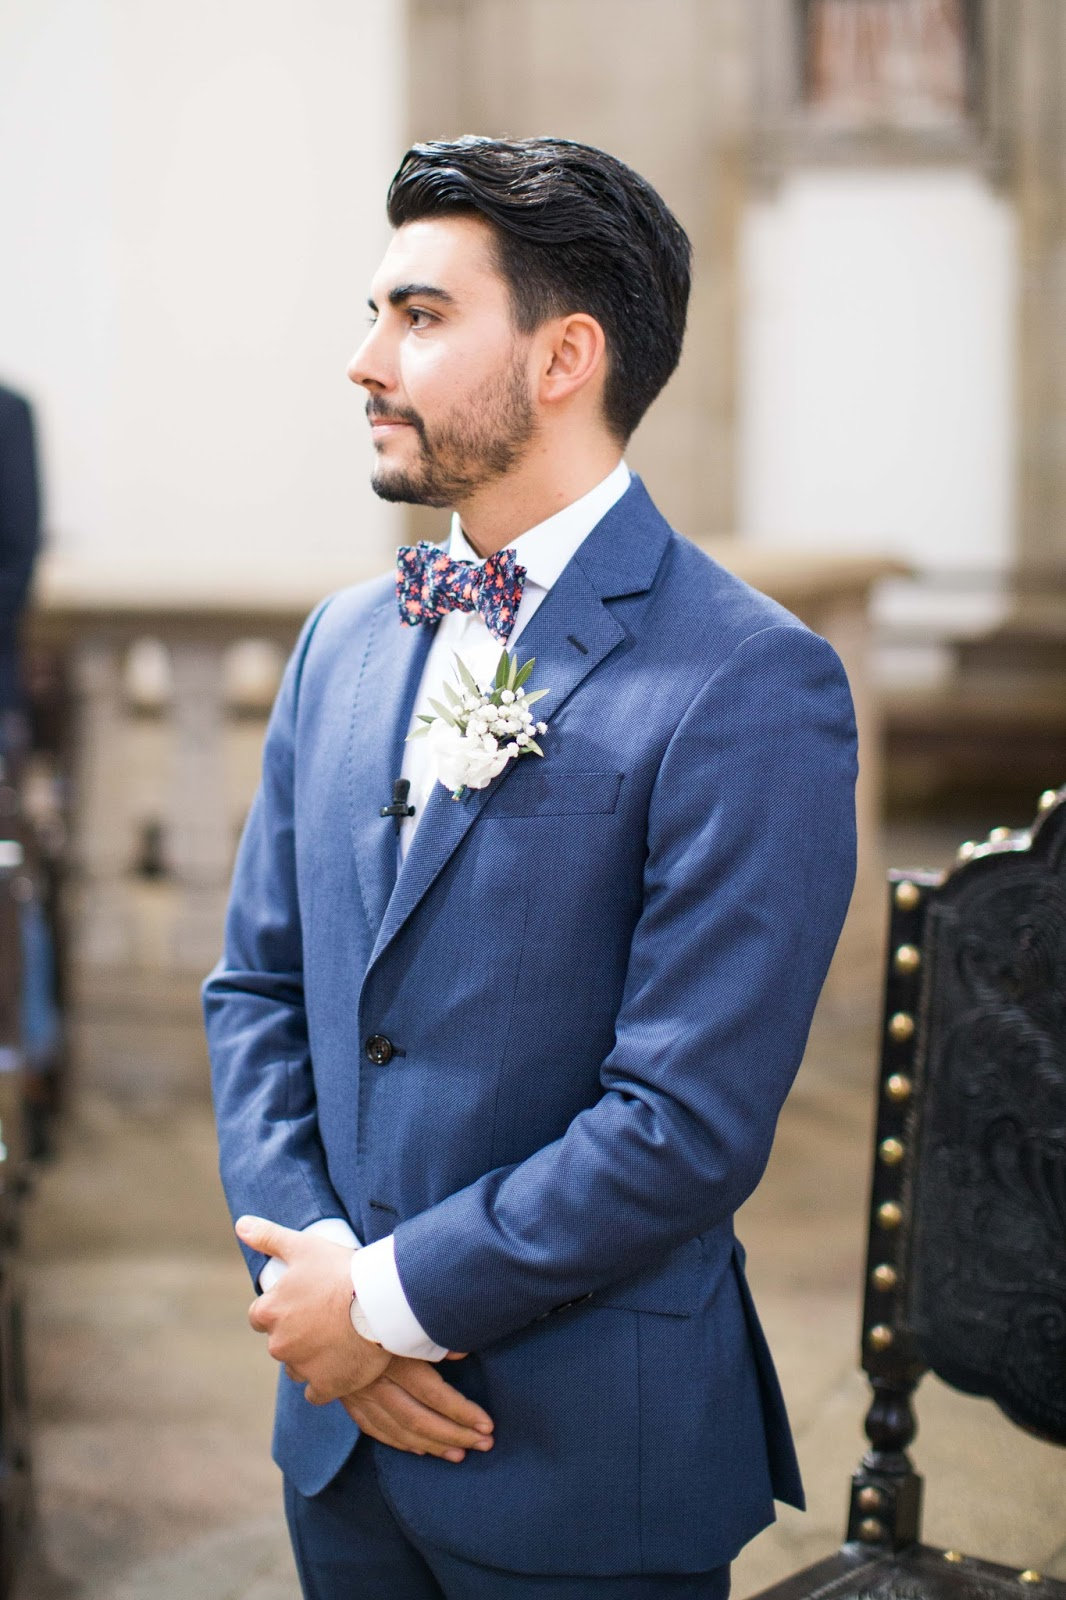 Groom wearing Blue suit Hawes and Curtis and Mrs Bow Tie